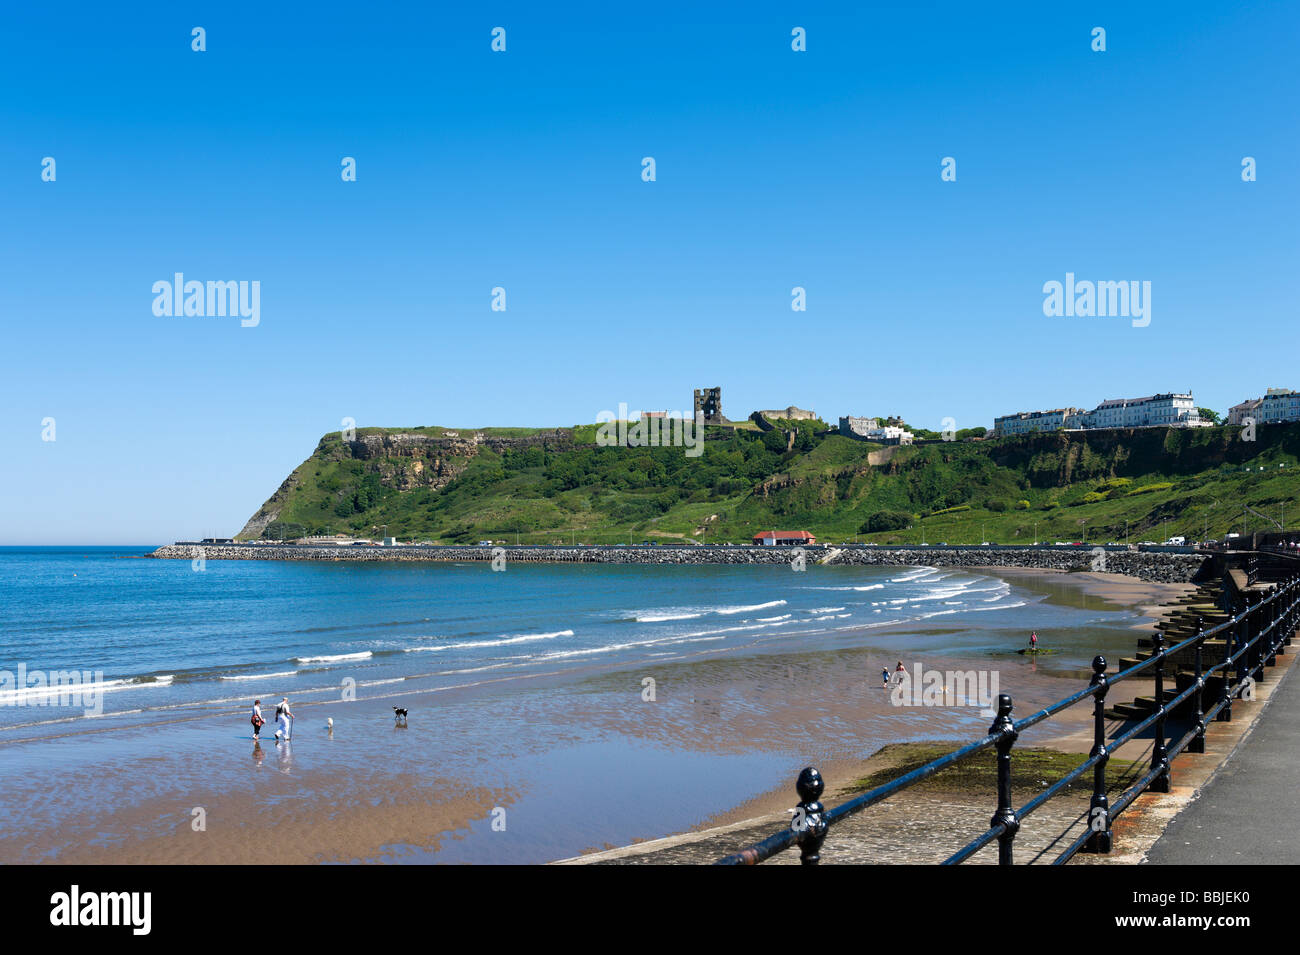 North Bay beach with the castle in the distance, Scarborough, East Coast, North Yorkshire, England - Stock Image